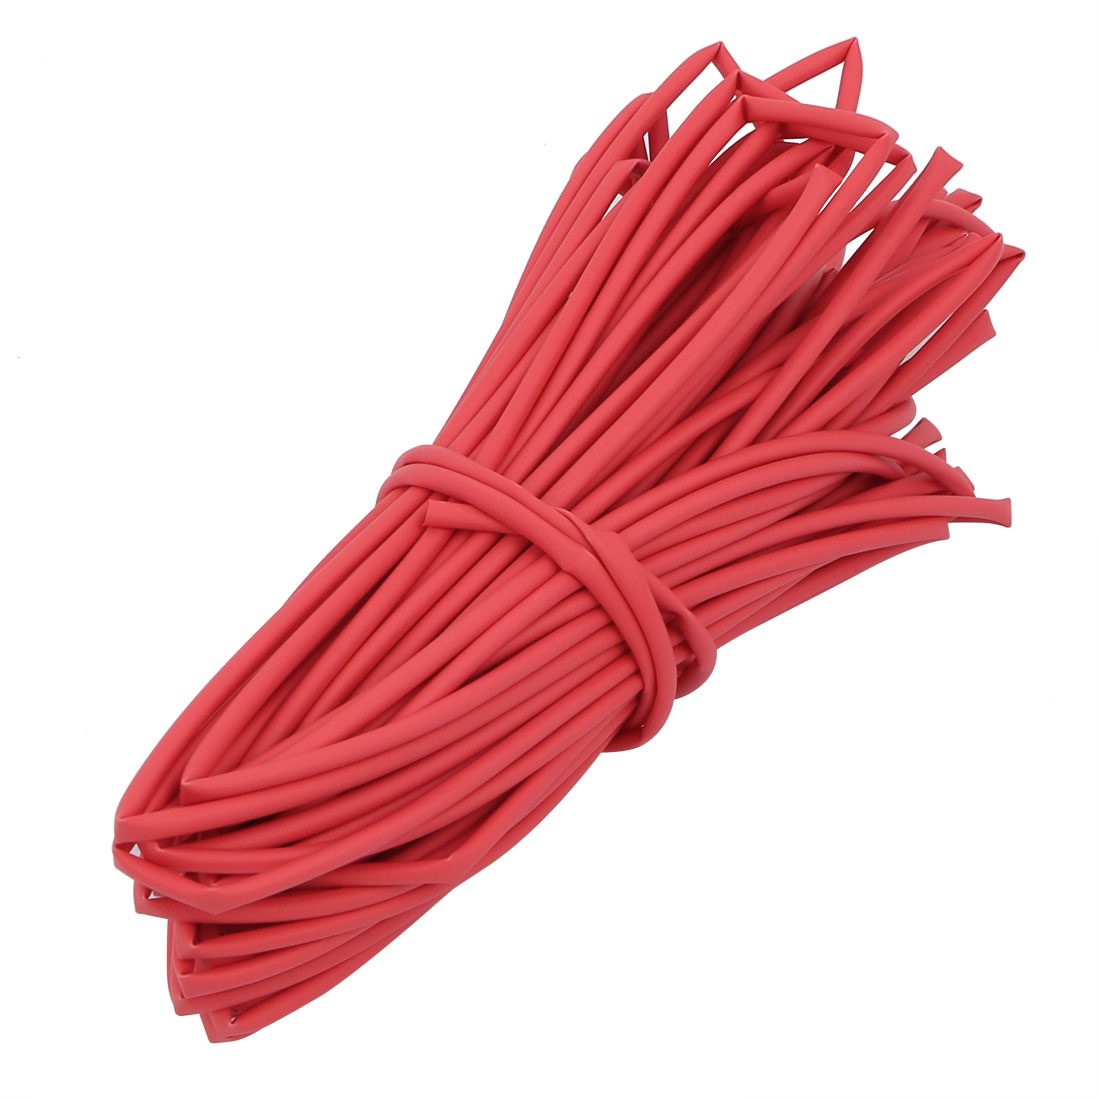 15M Long 1.5mm Inner Dia. Polyolefin Heat Shrinkable Tube Red for Wire Repairing